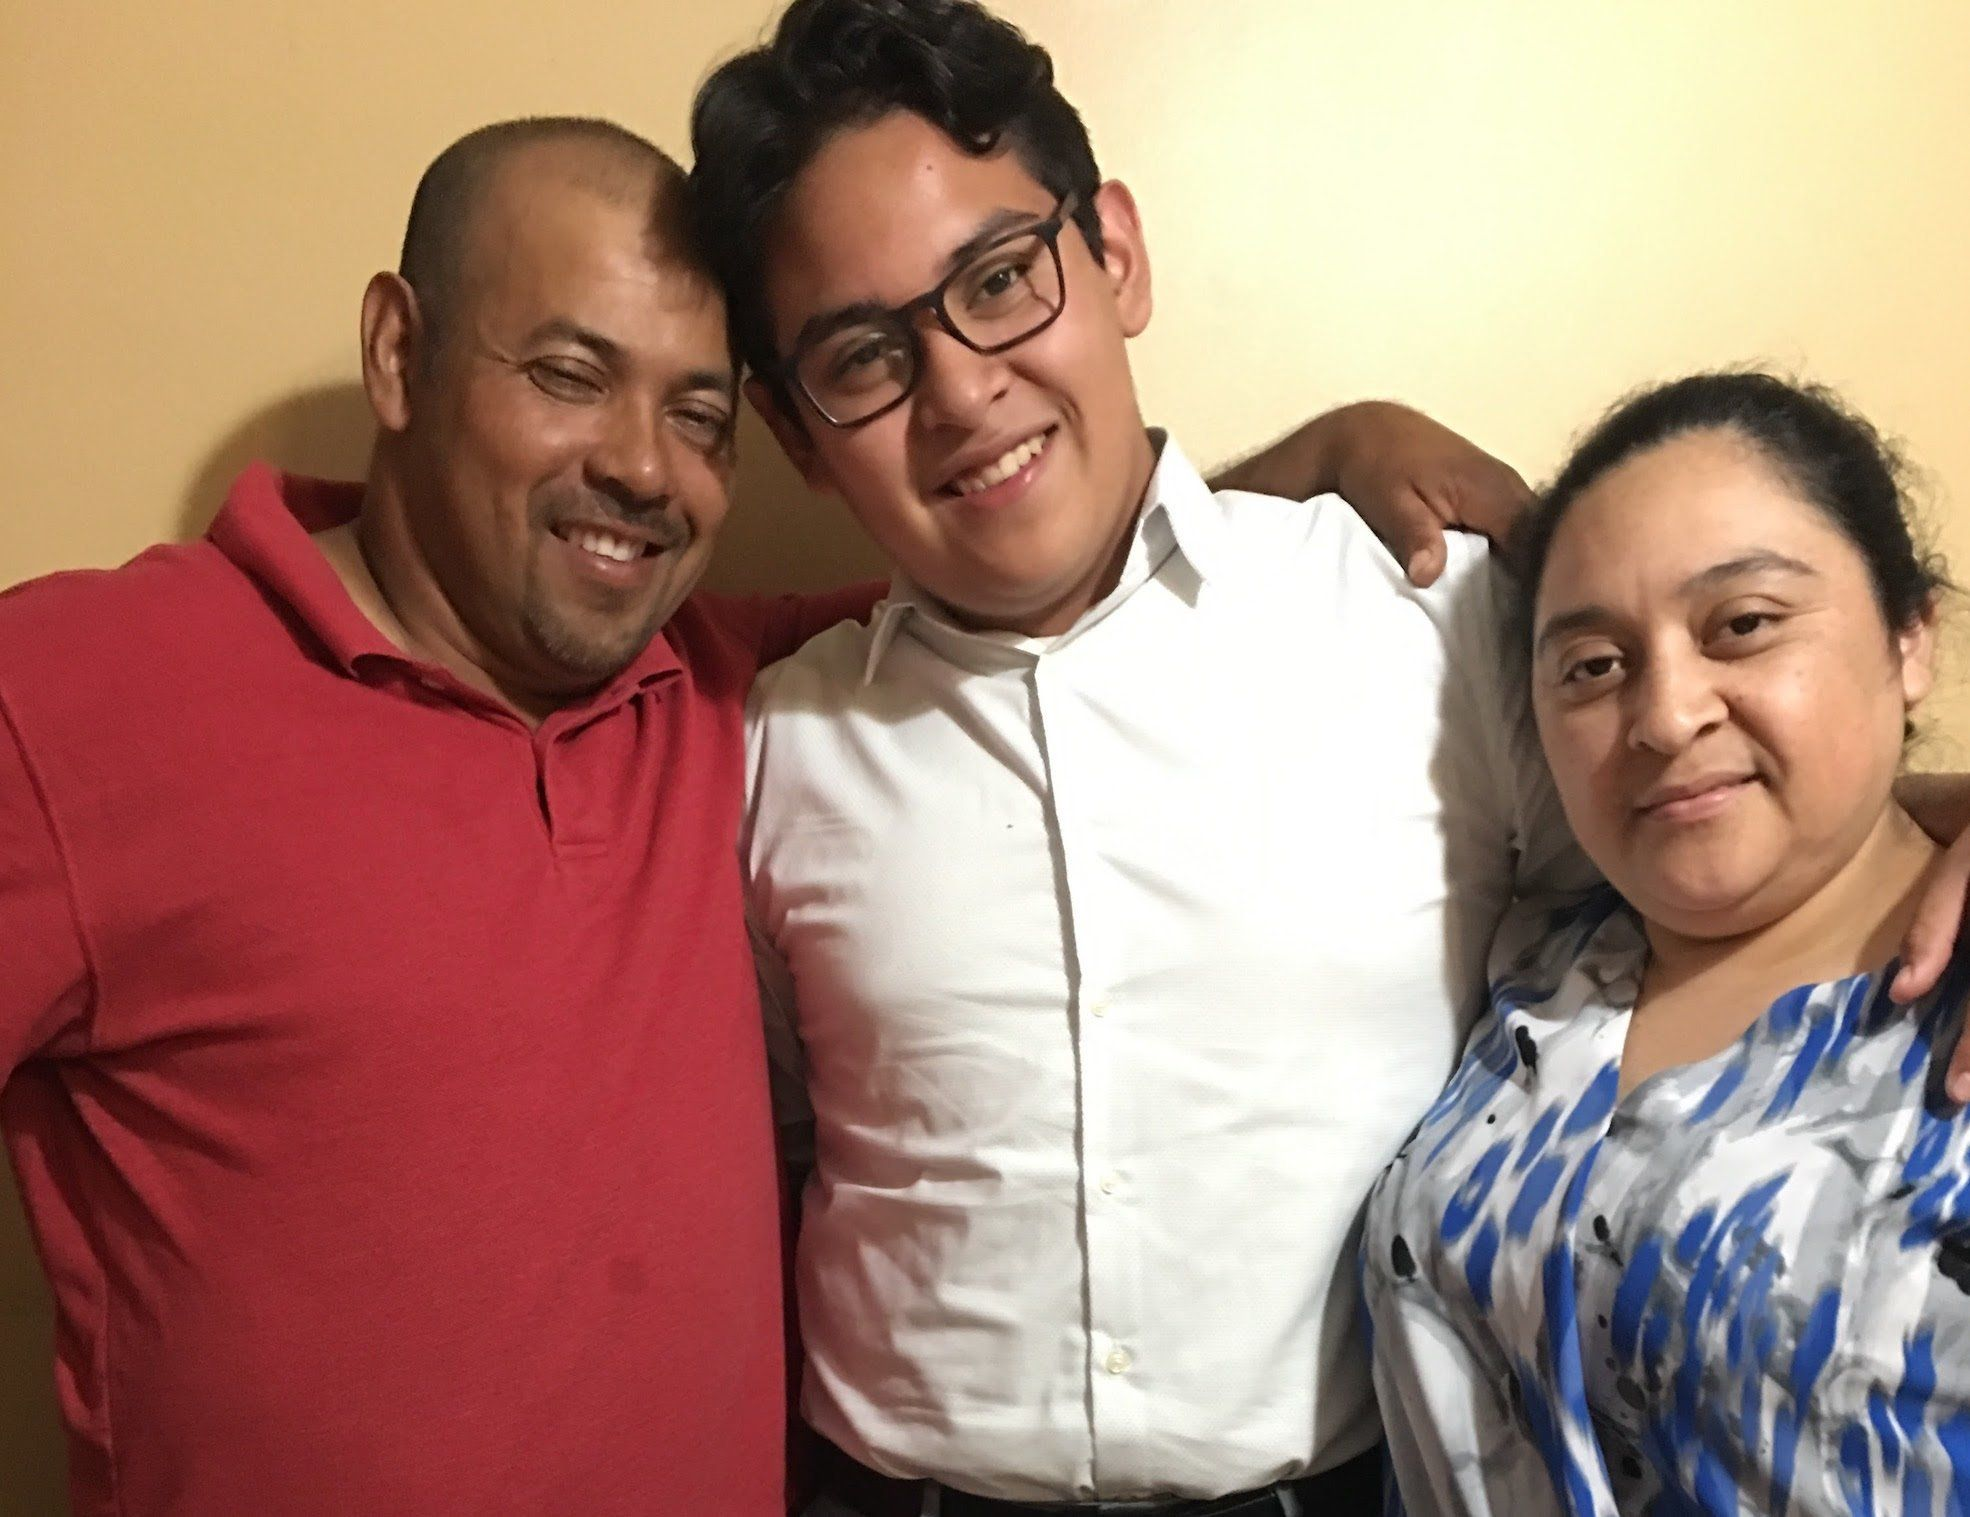 Samuel Amaya and parents